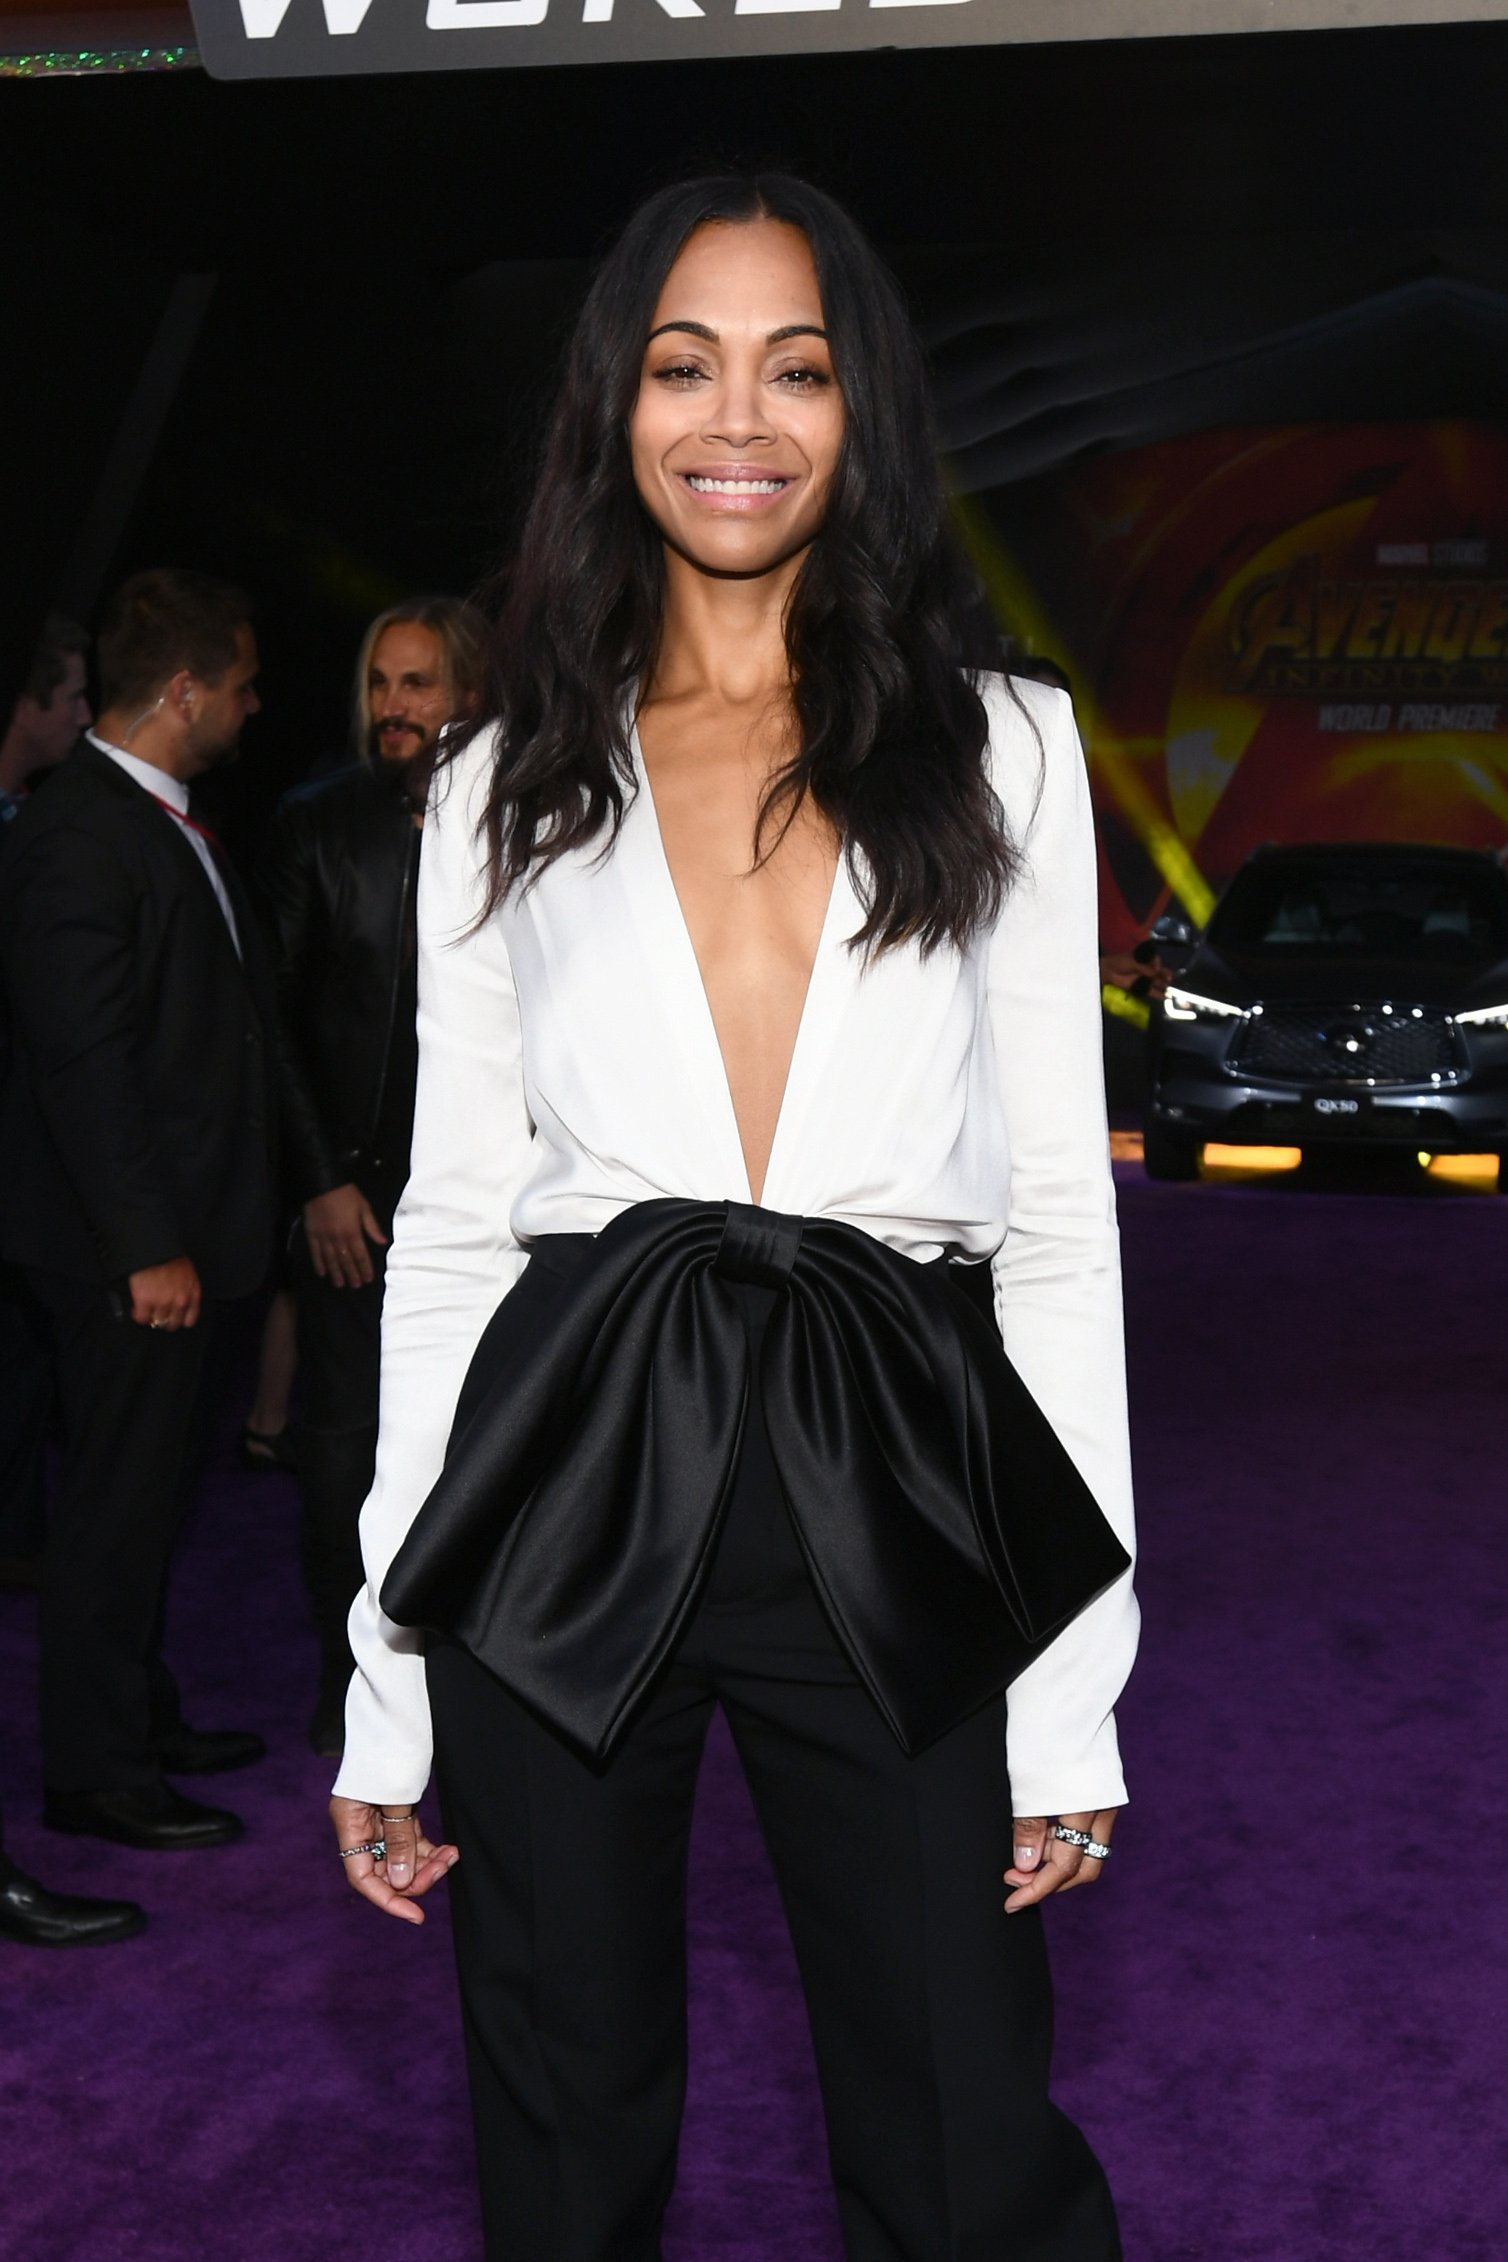 Zoe Saldana attends the premiere of Disney and Marvel's 'Avengers: Infinity War'. April, 2018. | Photo: GettyImages